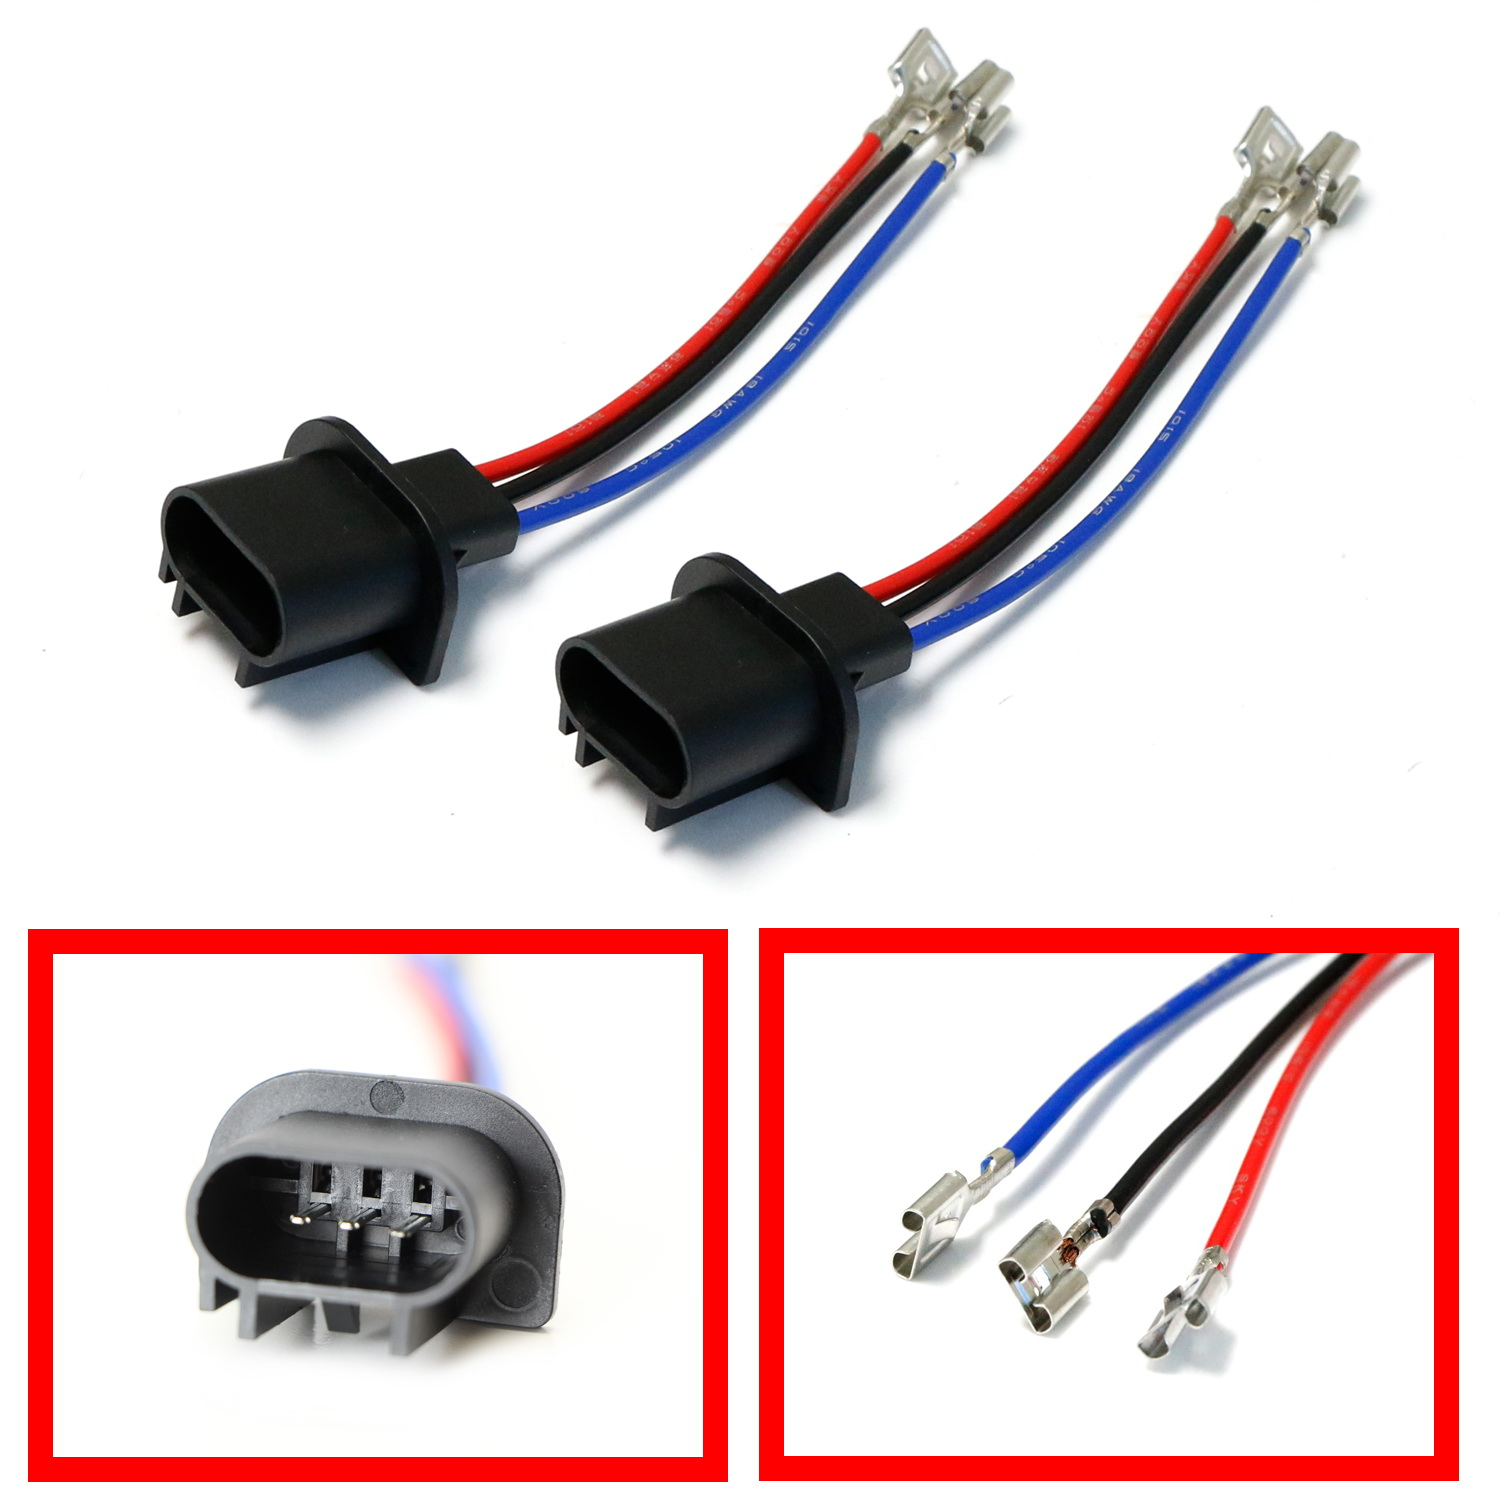 hight resolution of ijdmtoy 2 h13 9008 to 9007 9004 or 9003 h4 polarity adjustable 9003 headlight bulb vs h4 h4 vs 9003 wiring